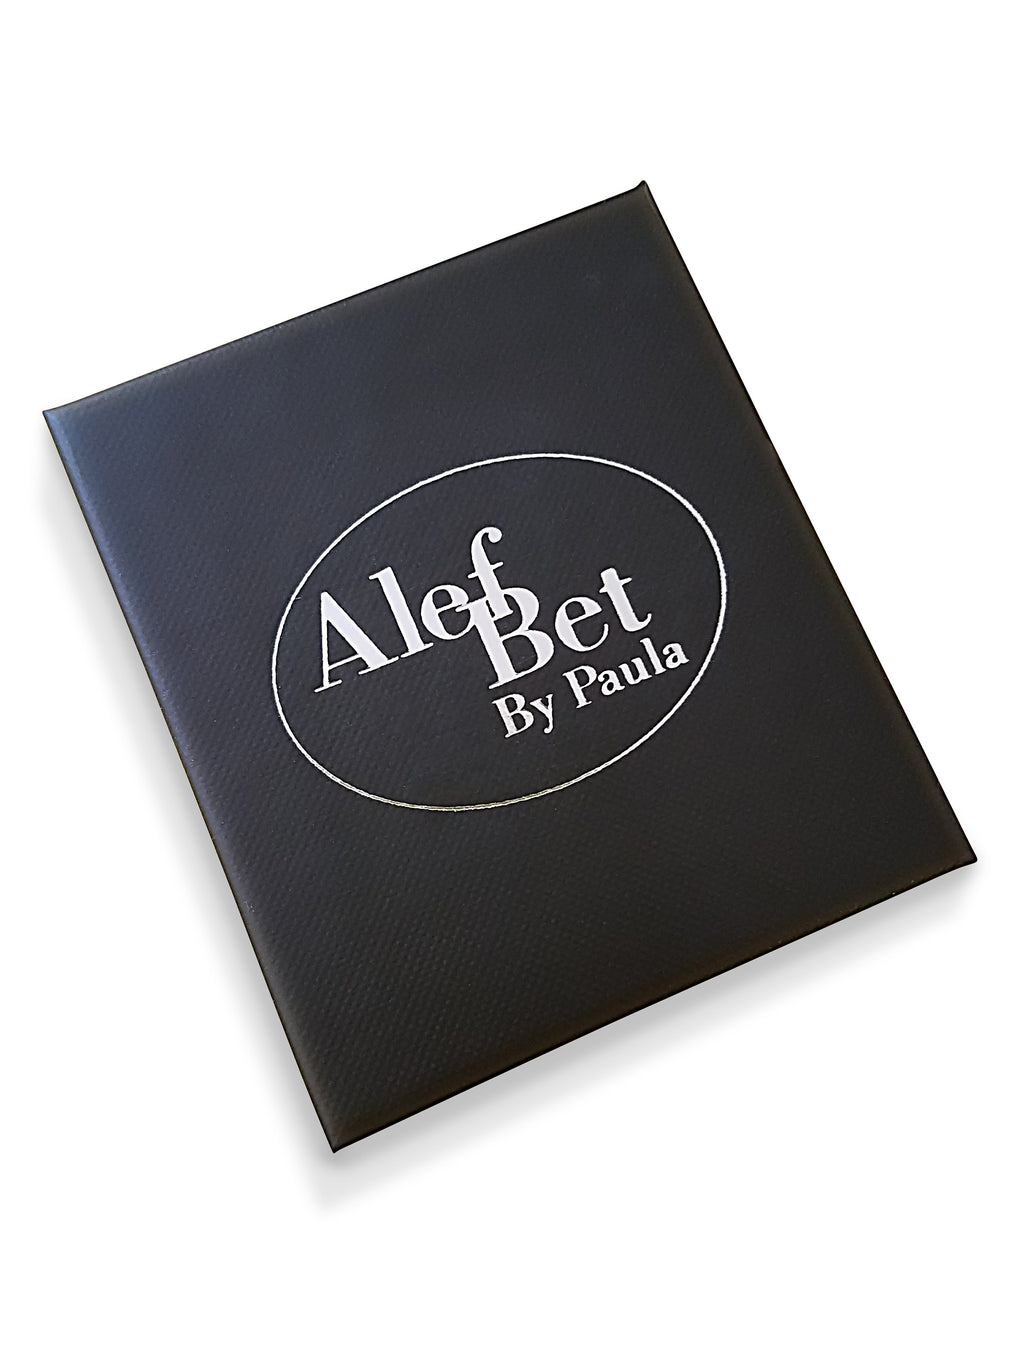 Gift Wrapping - Alef Bet Jewelry by Paula